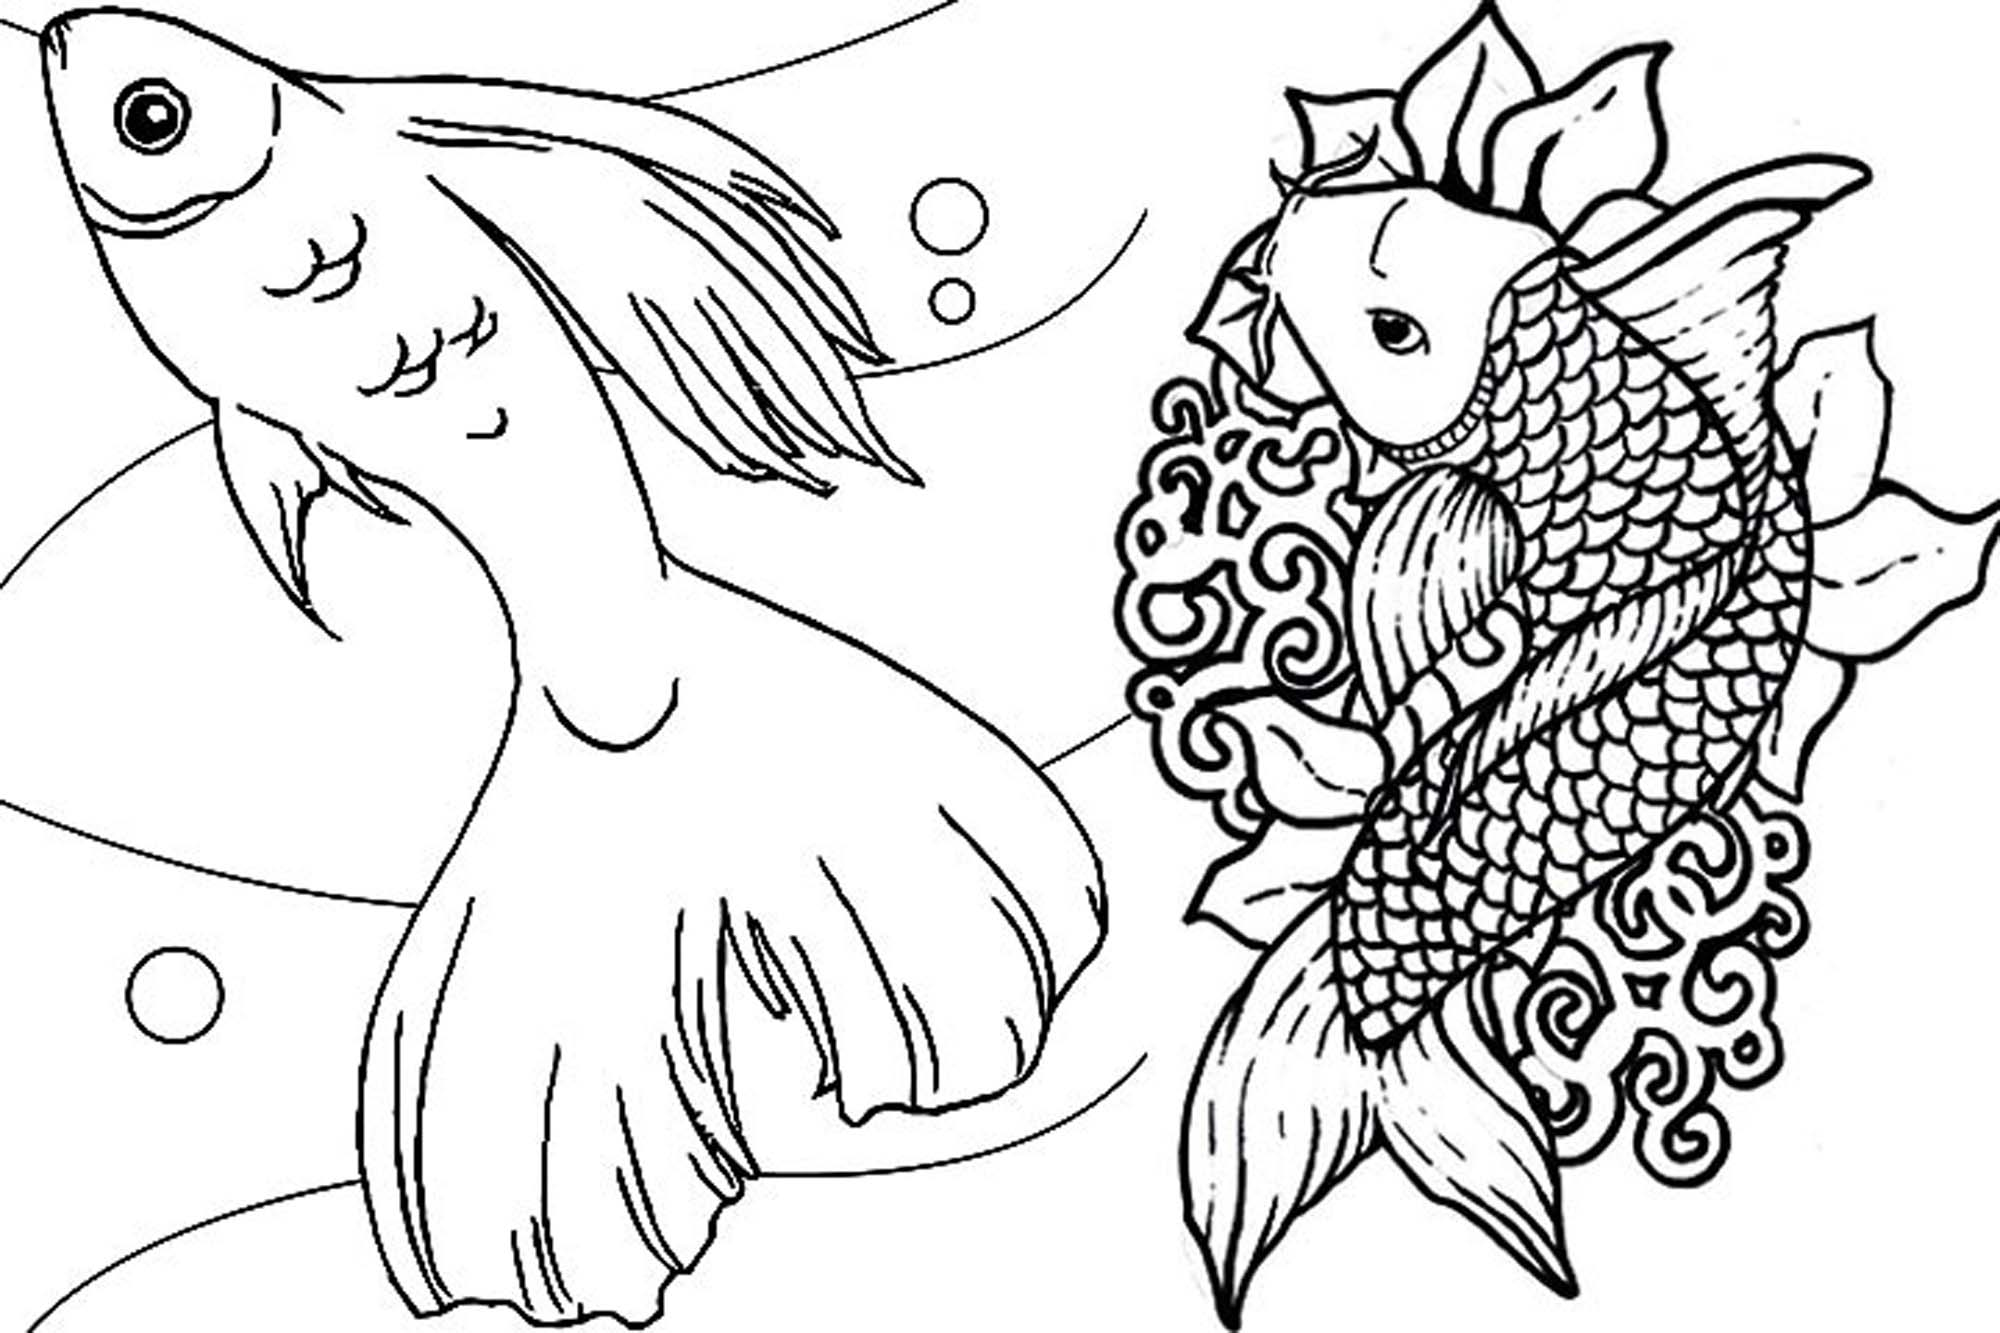 pictures of fish coloring pages color pages of fish activity shelter fish pictures coloring of pages